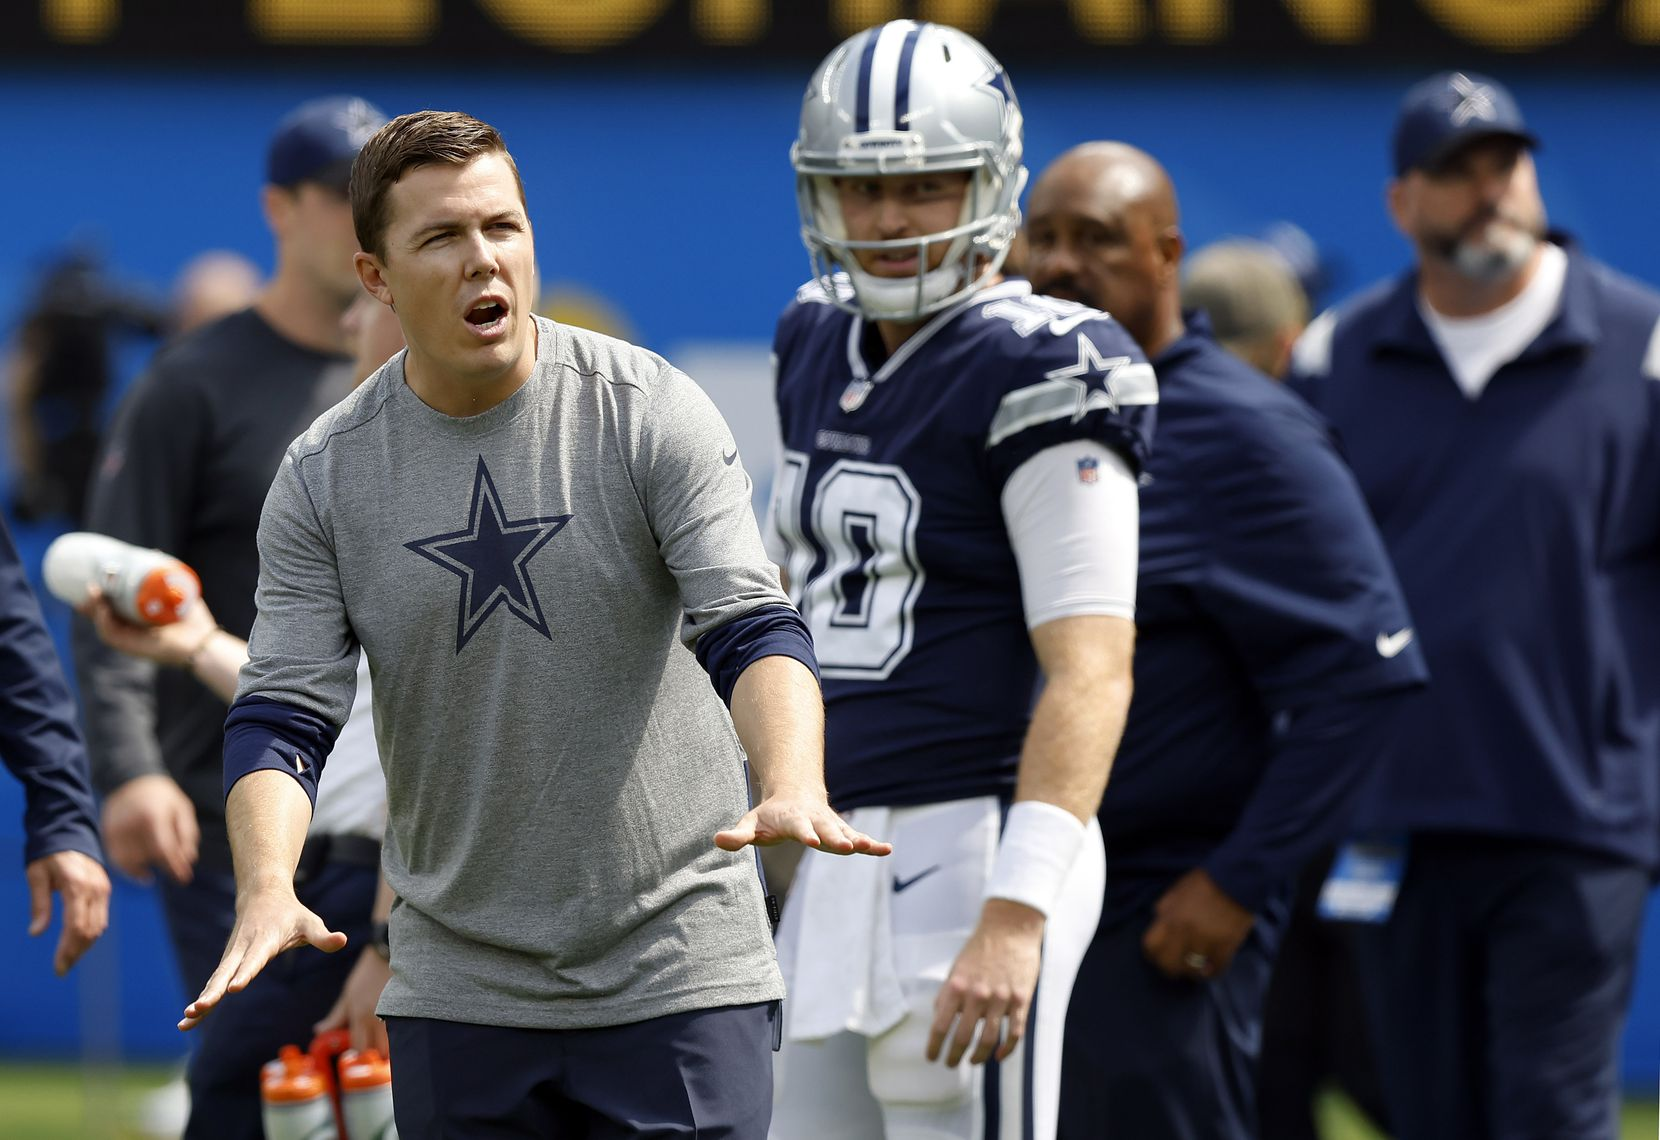 Dallas Cowboys offensive coordinator Kellen Moore motion to his players during pregame warmups before their game against the Los Angeles Chargers at SoFi Stadium in Inglewood, California, Sunday, September 19, 2021. (Tom Fox/The Dallas Morning News)